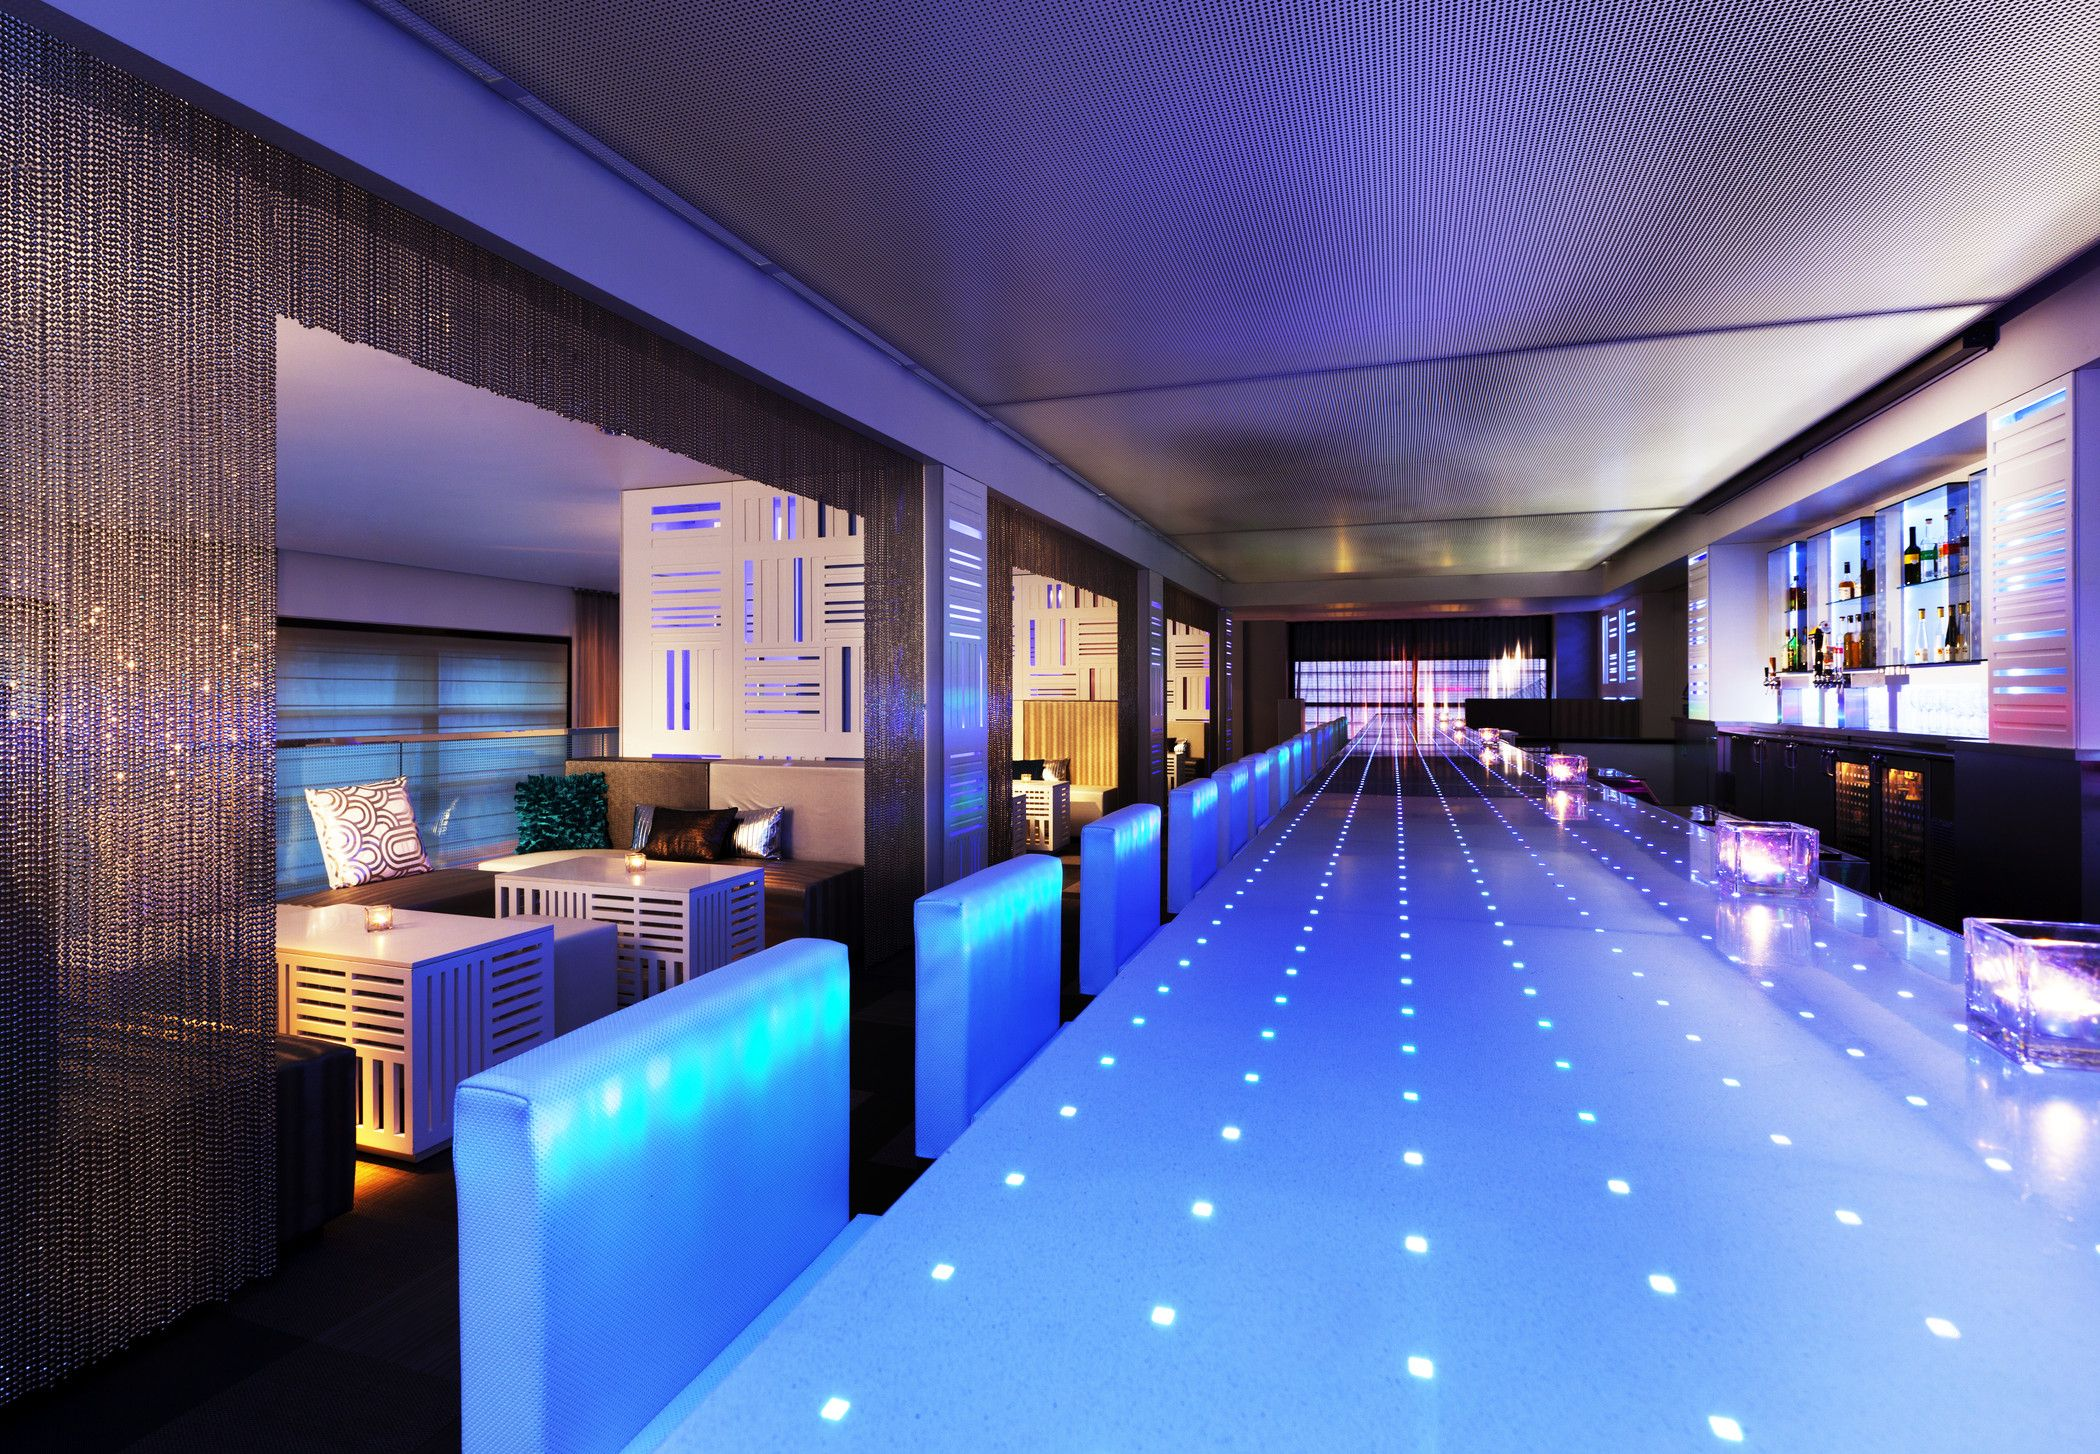 The W Hotel If Your Company Is Looking For A Their Holiday Party San Francisco